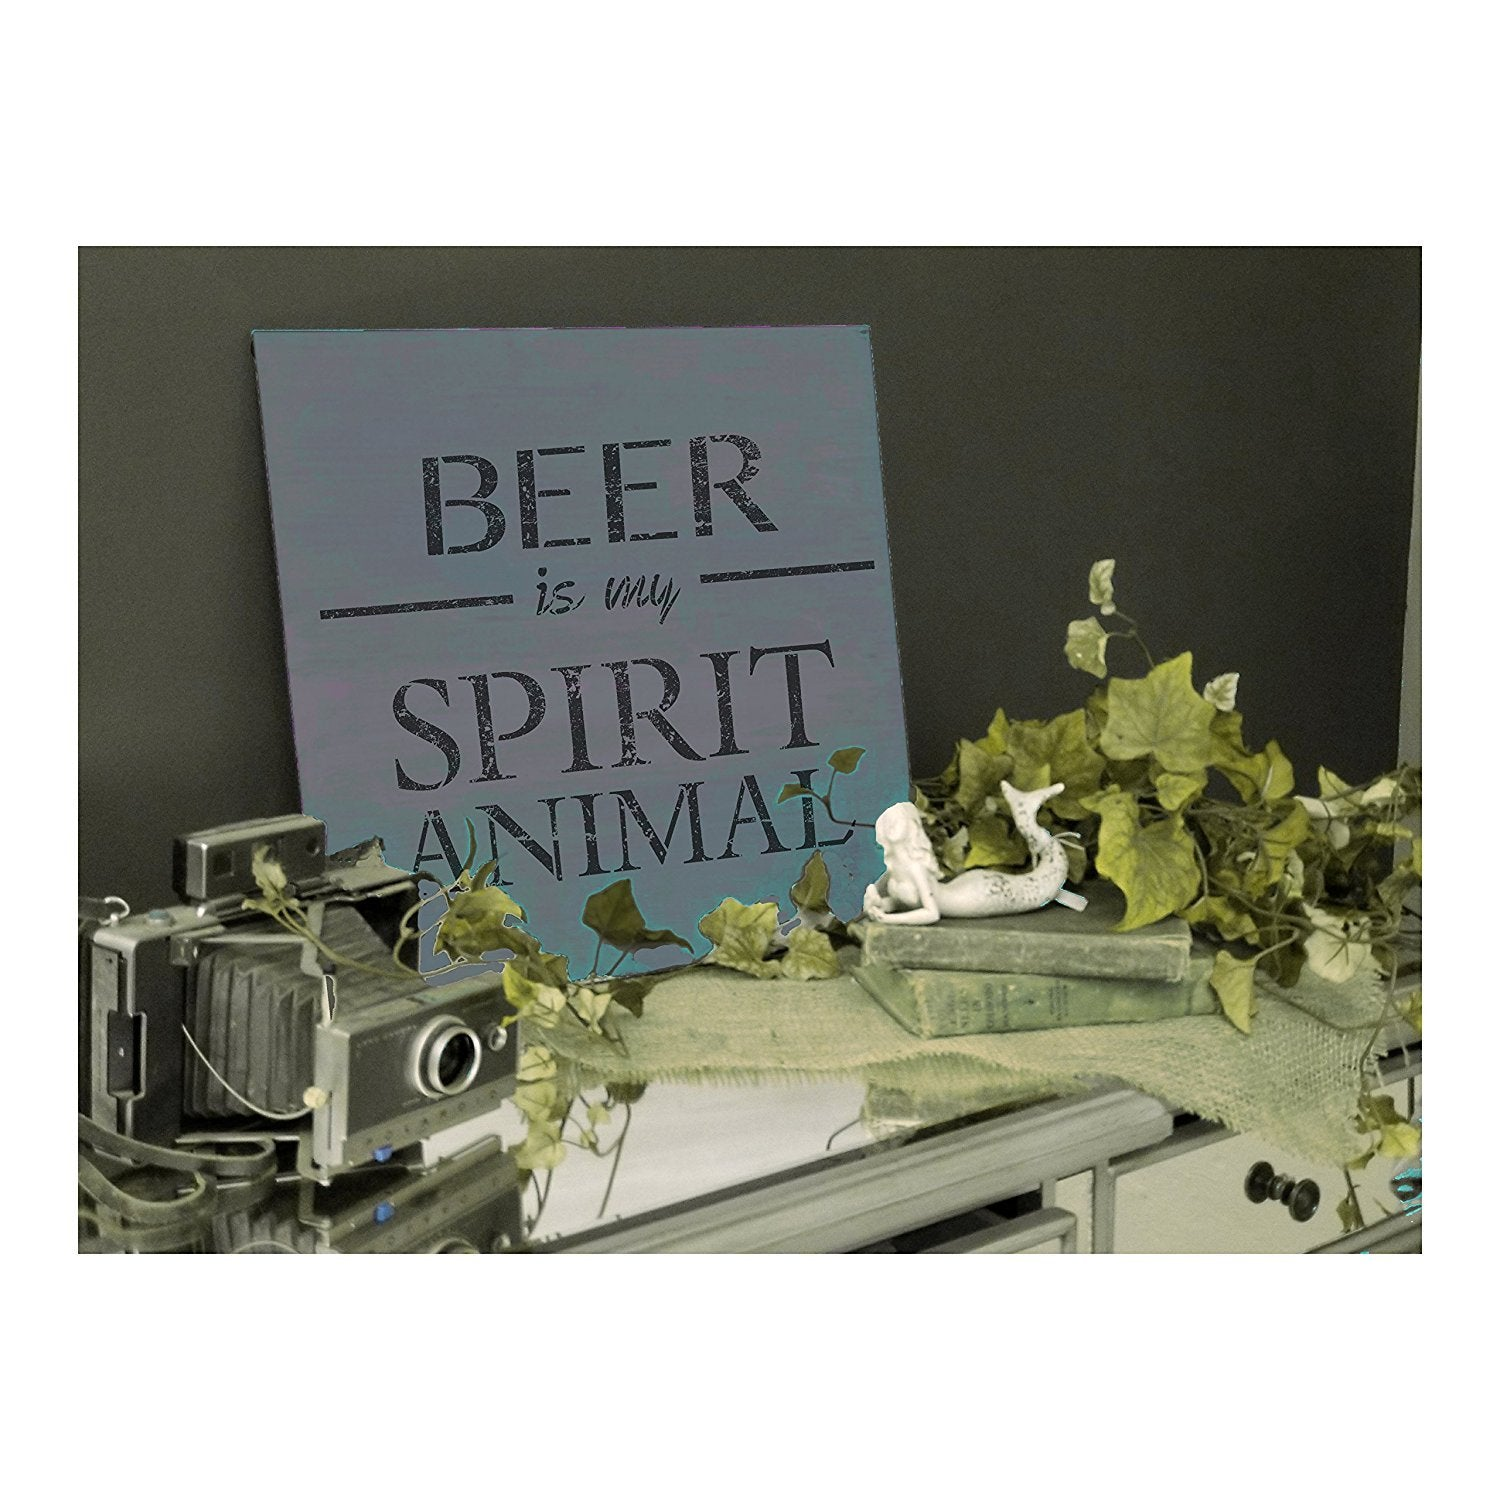 Beer Is My Spirit Animal Stencil by StudioR12 | Bar, Pub, Man Cave Word Art - Reusable Mylar Template | Painting, Chalk, Mixed Media | Use for Wood Sign, Wall Art, DIY Home Decor SELECT SIZE